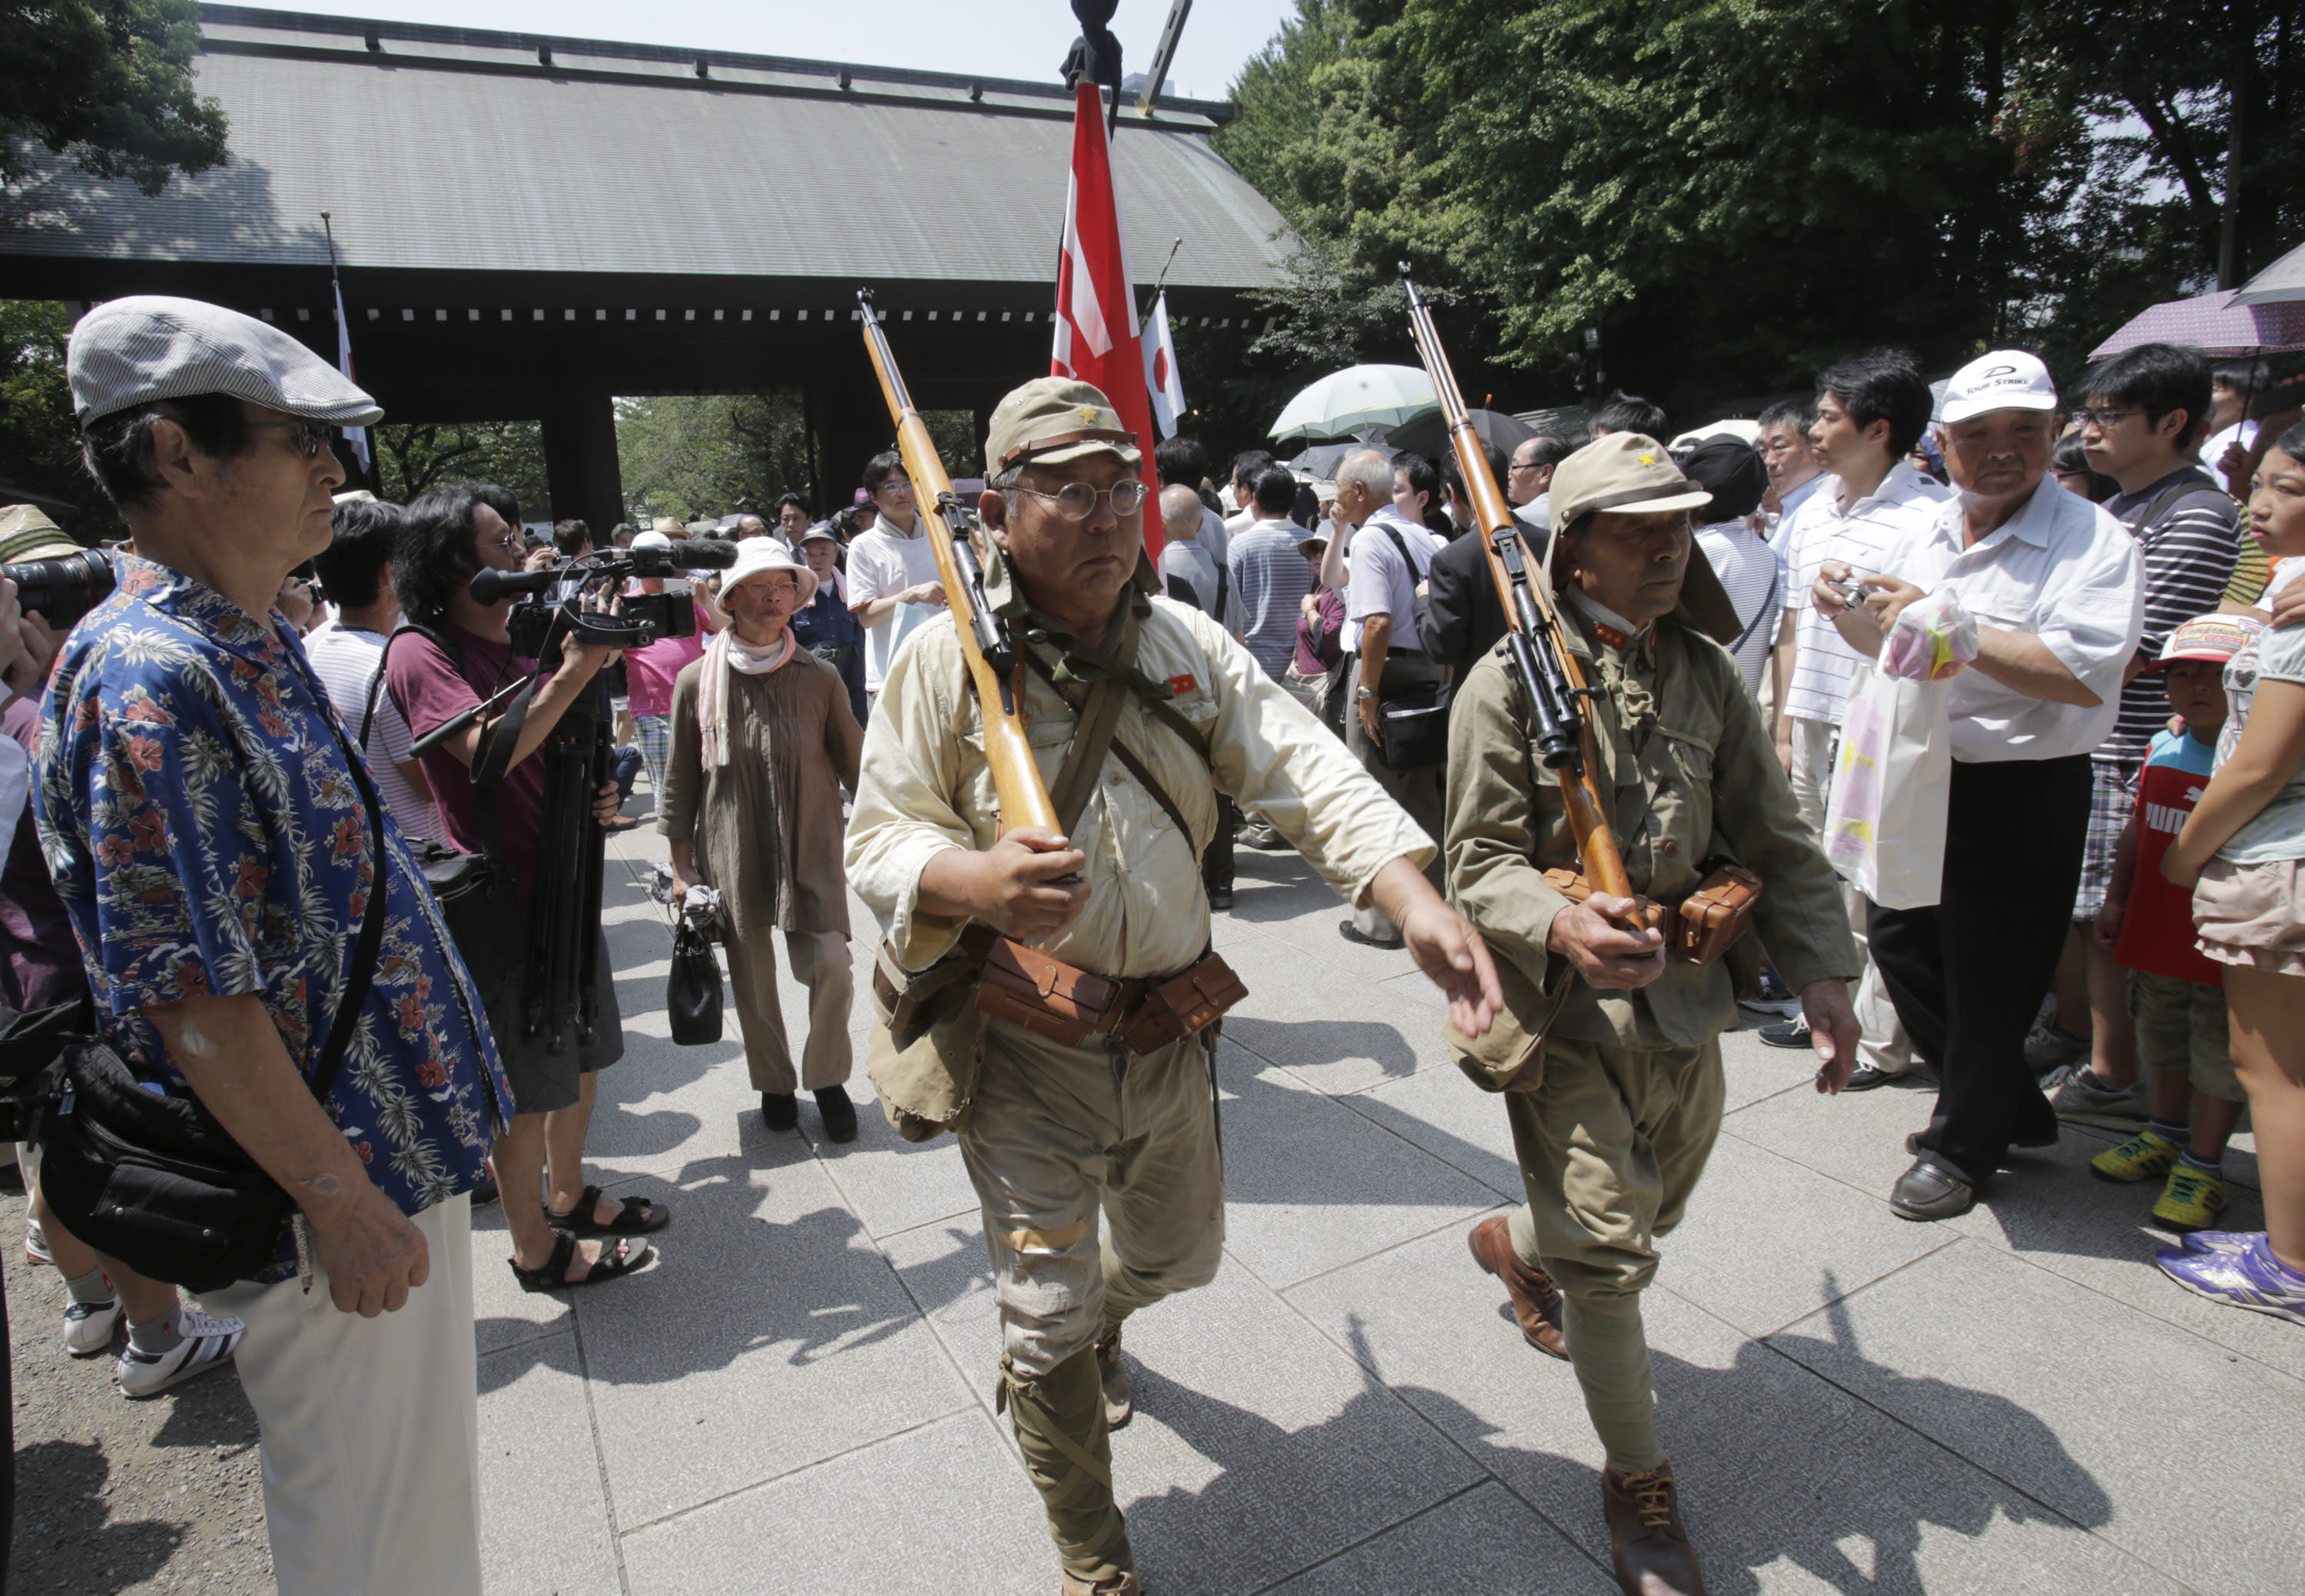 Japanese men clad in outdated military costume march in to pay respects to the nation's war dead at the Yasukuni Shrine in Tokyo Thursday, Aug. 15, 2013. Japan marked the 68th anniversary of its surrender in World War II with somber ceremonies Thursday and visits by senior politicians to the shrine honoring 2.5 million war dead that remains a galling reminder of colonial and wartime aggression. (AP Photo/Shizuo Kambayashi)